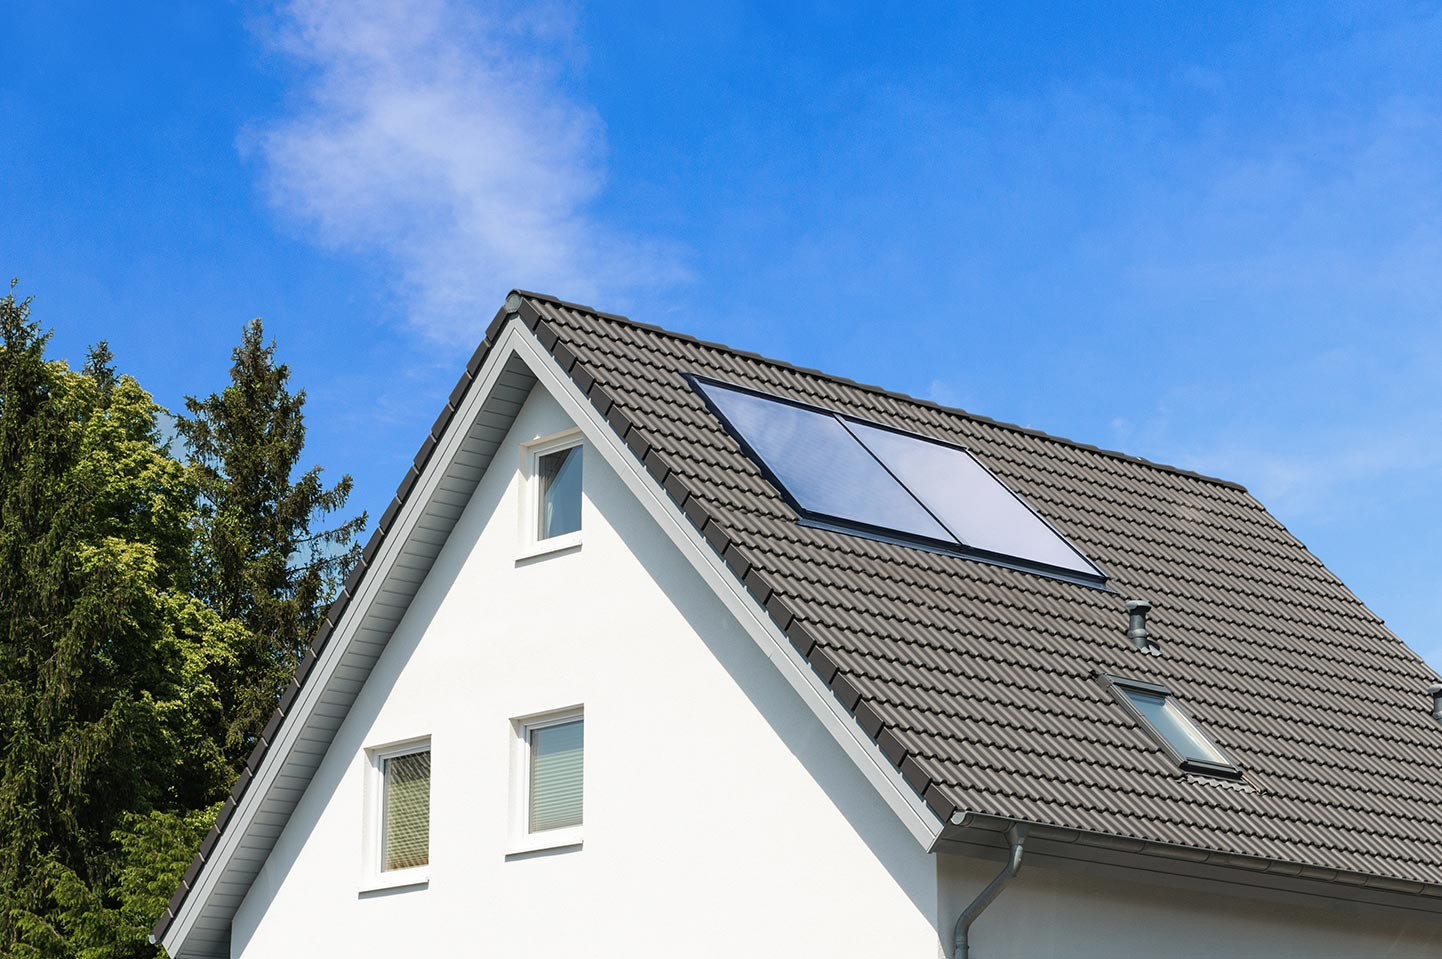 New Support for Solar PV in Irish Homes